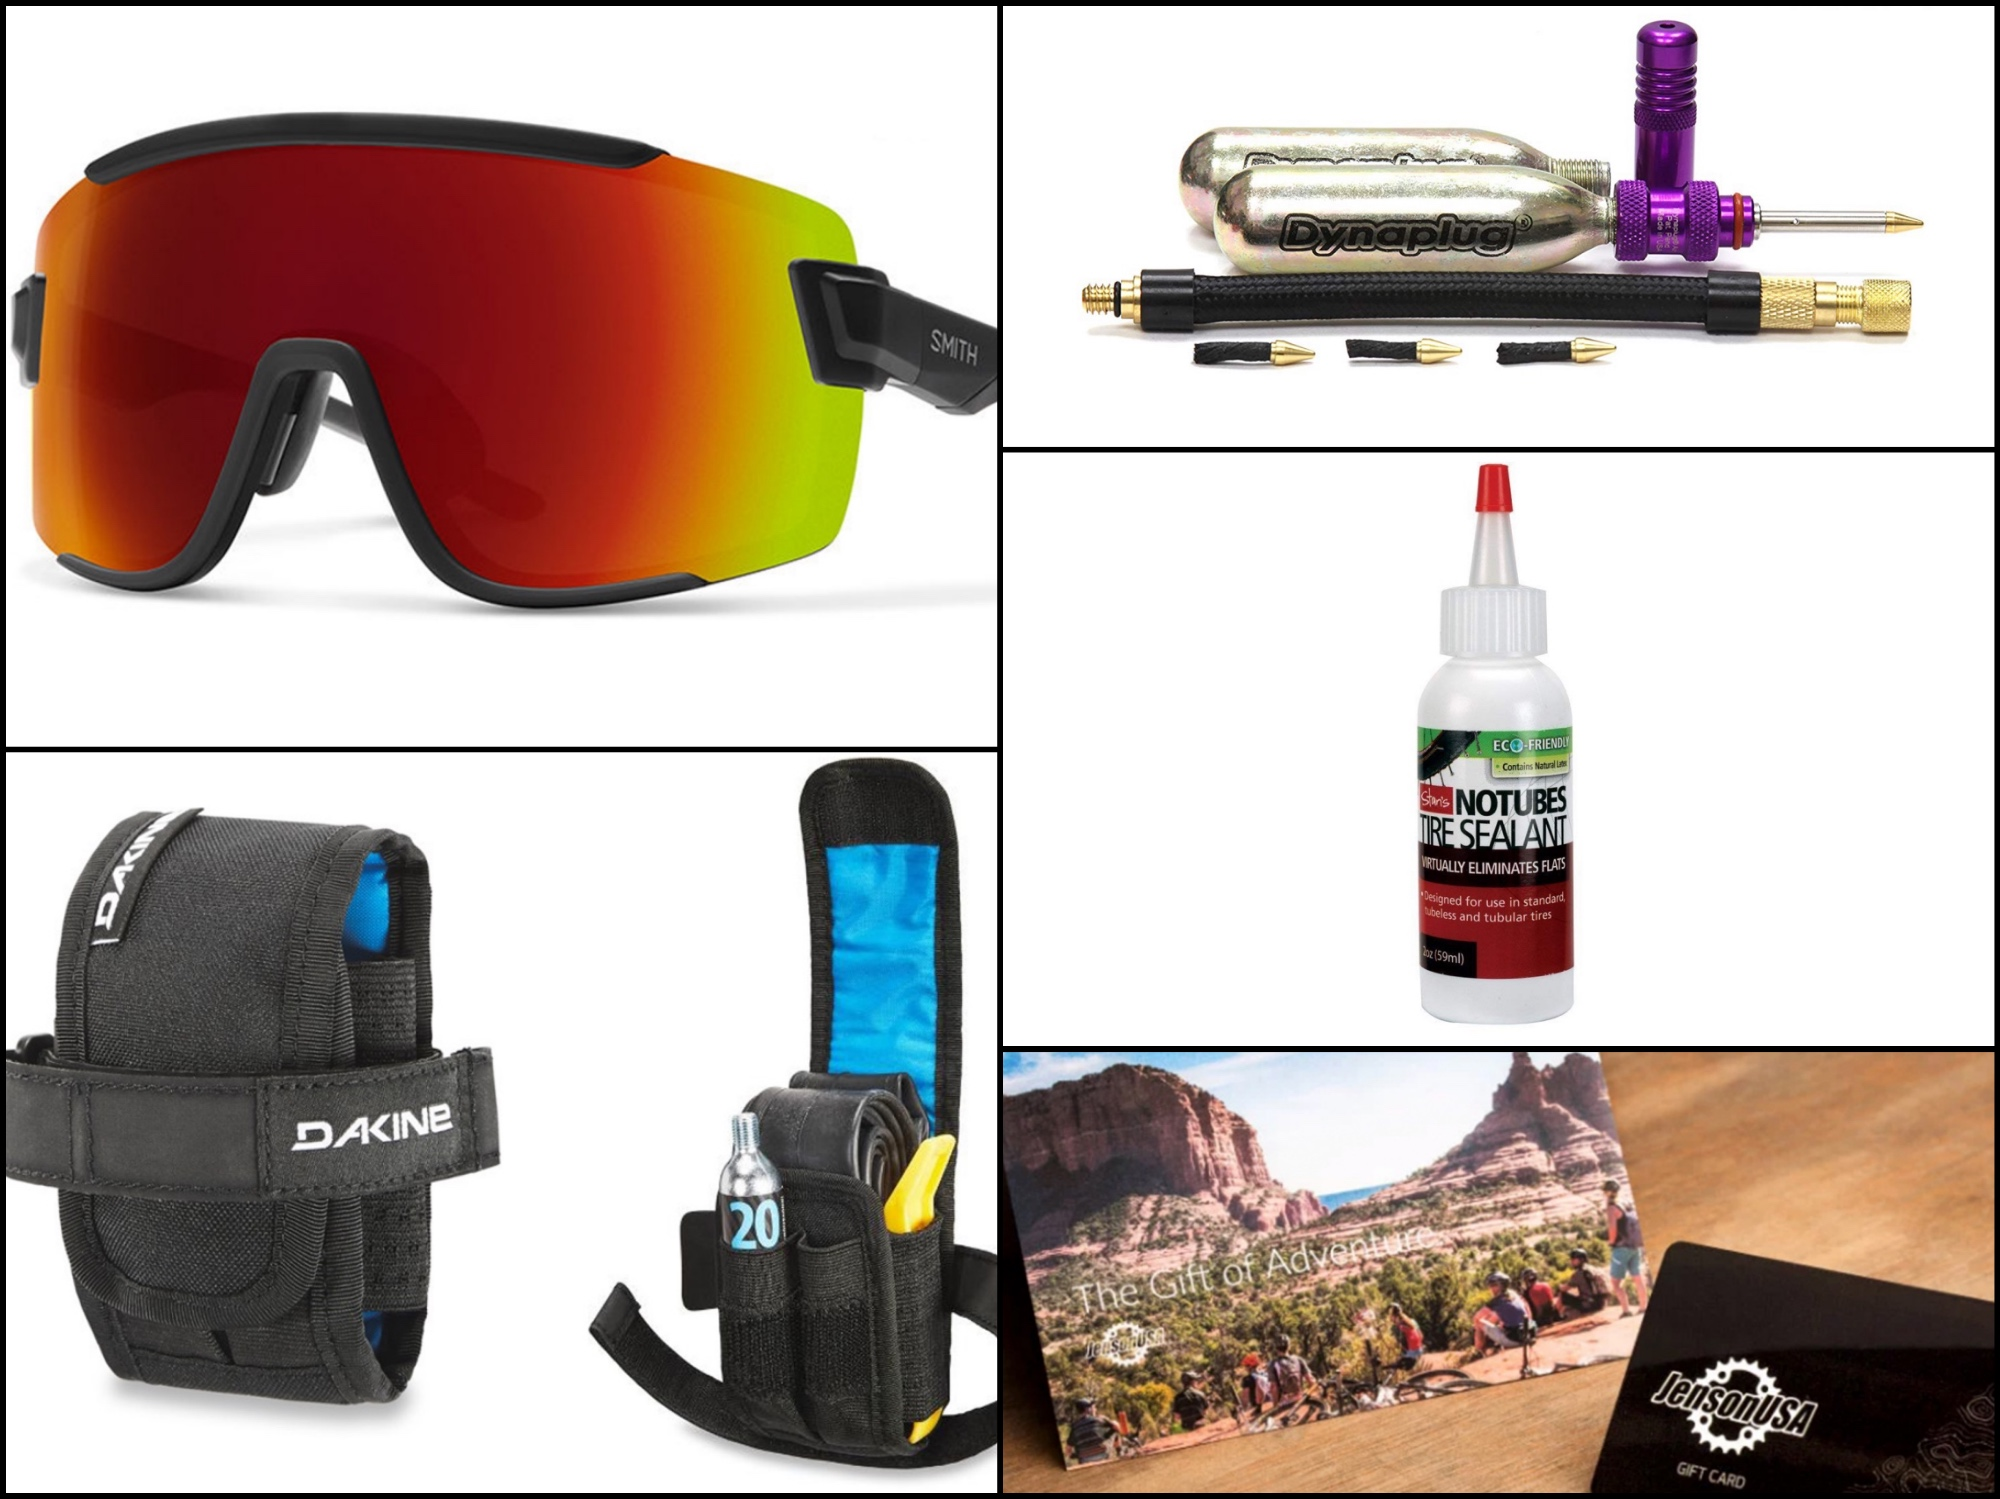 Stocking stuffers for mountain bikers